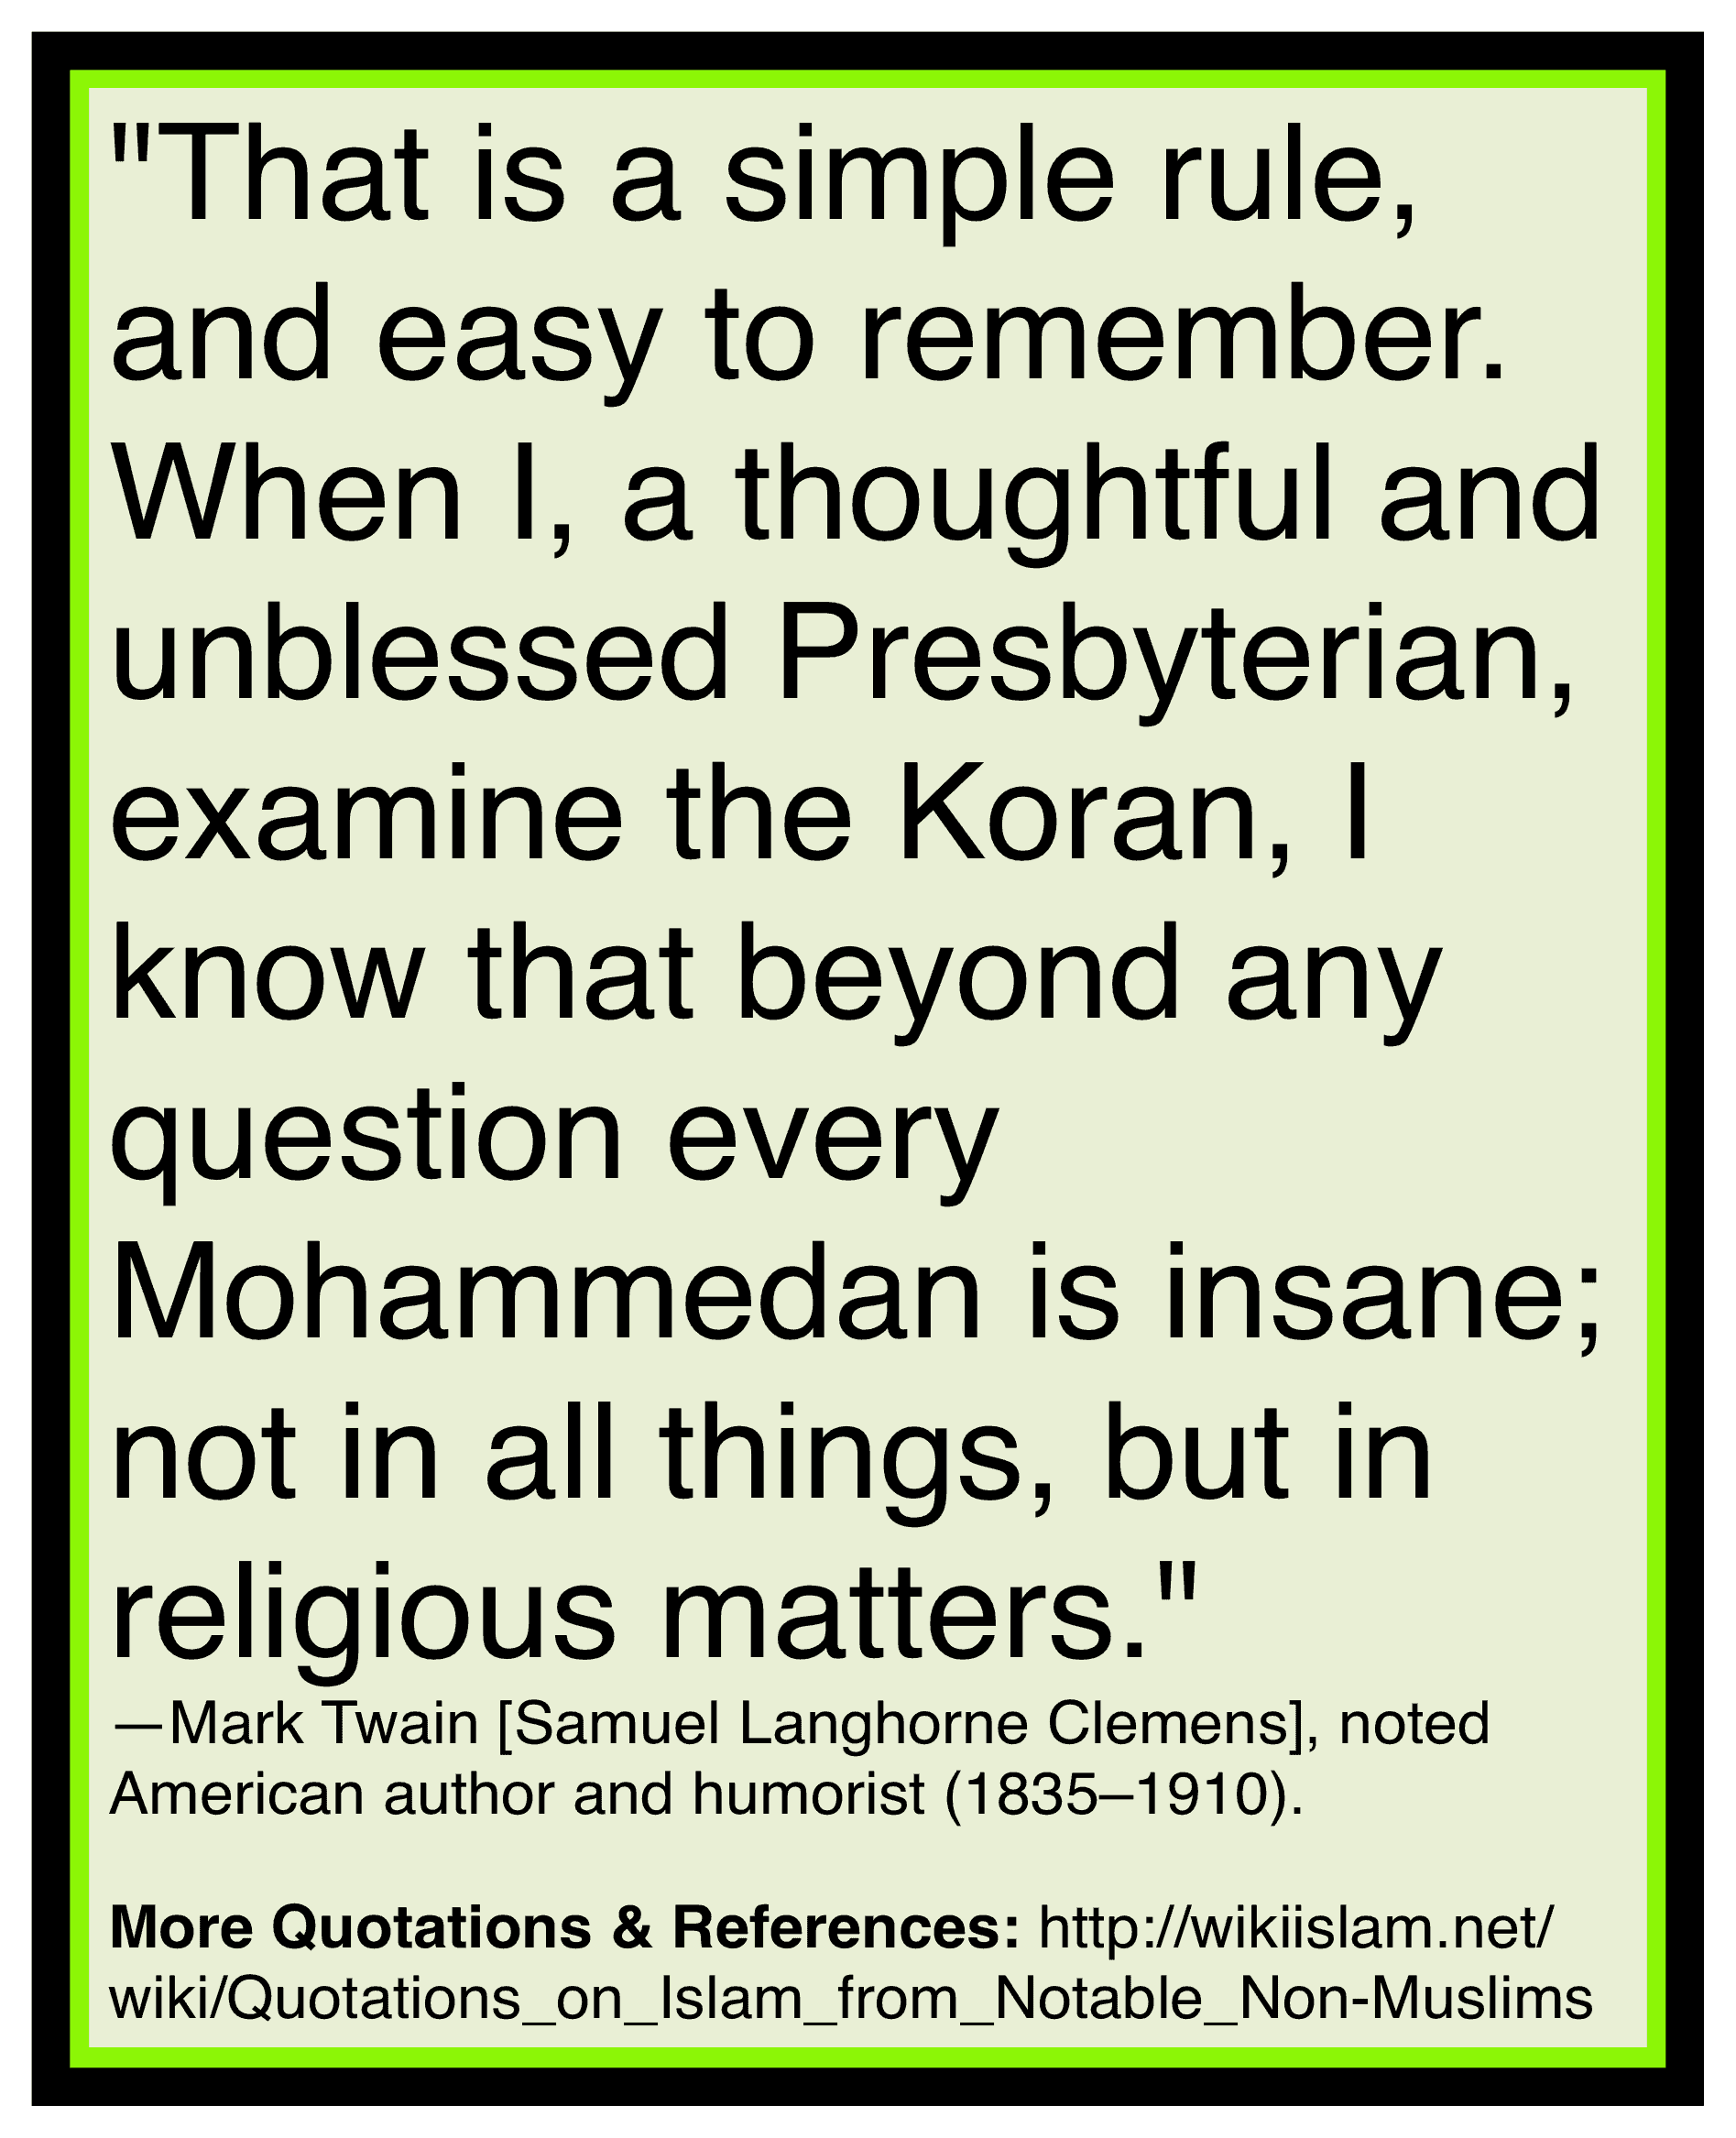 Islam is insane religion